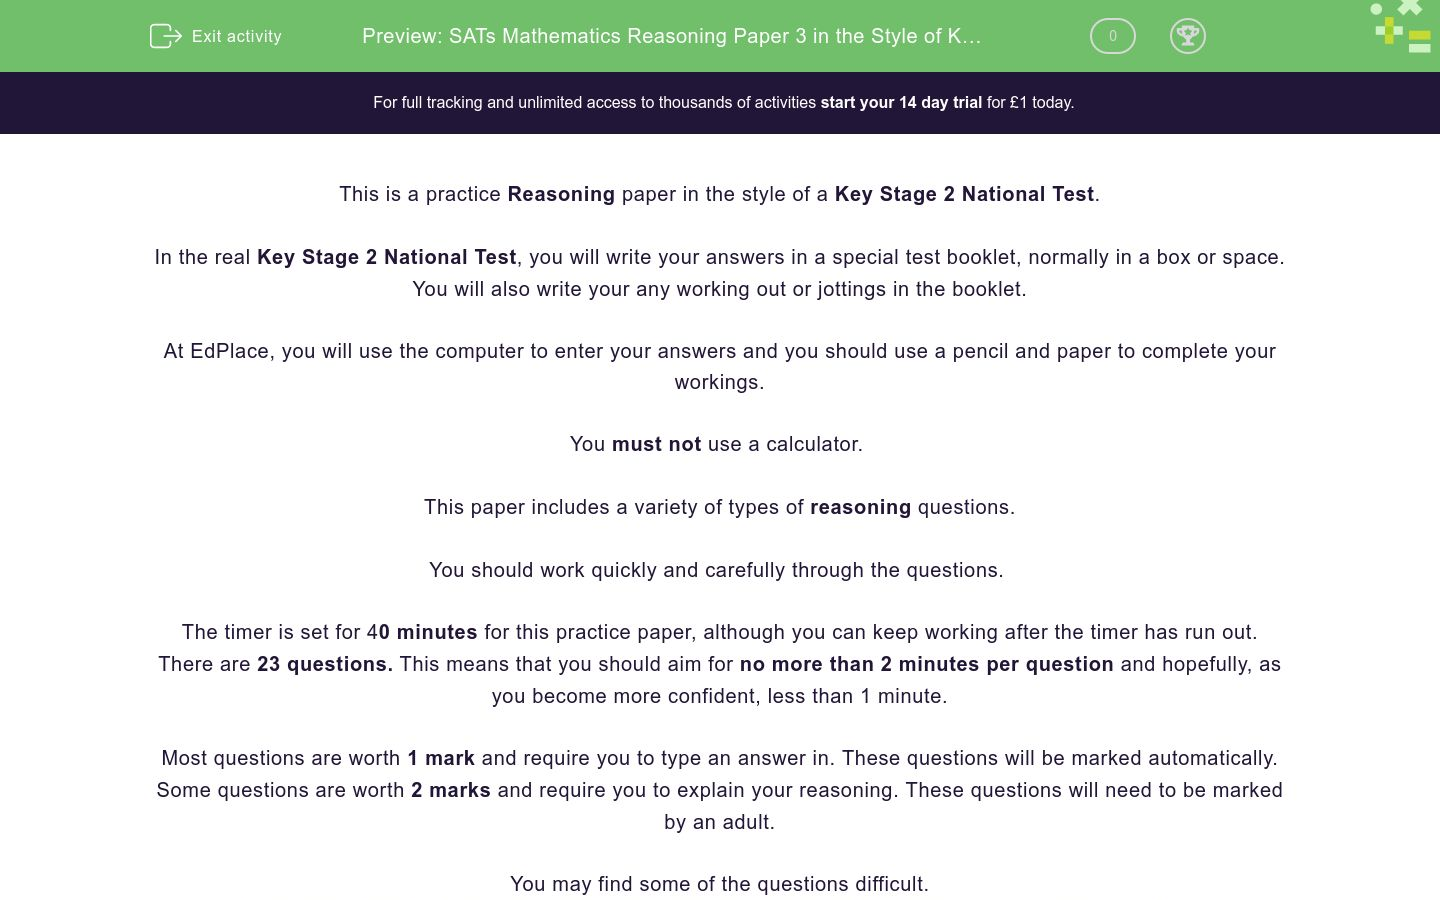 'SATs Mathematics Reasoning Paper 3 in the Style of Key Stage 2 National Tests (Practice 3)' worksheet